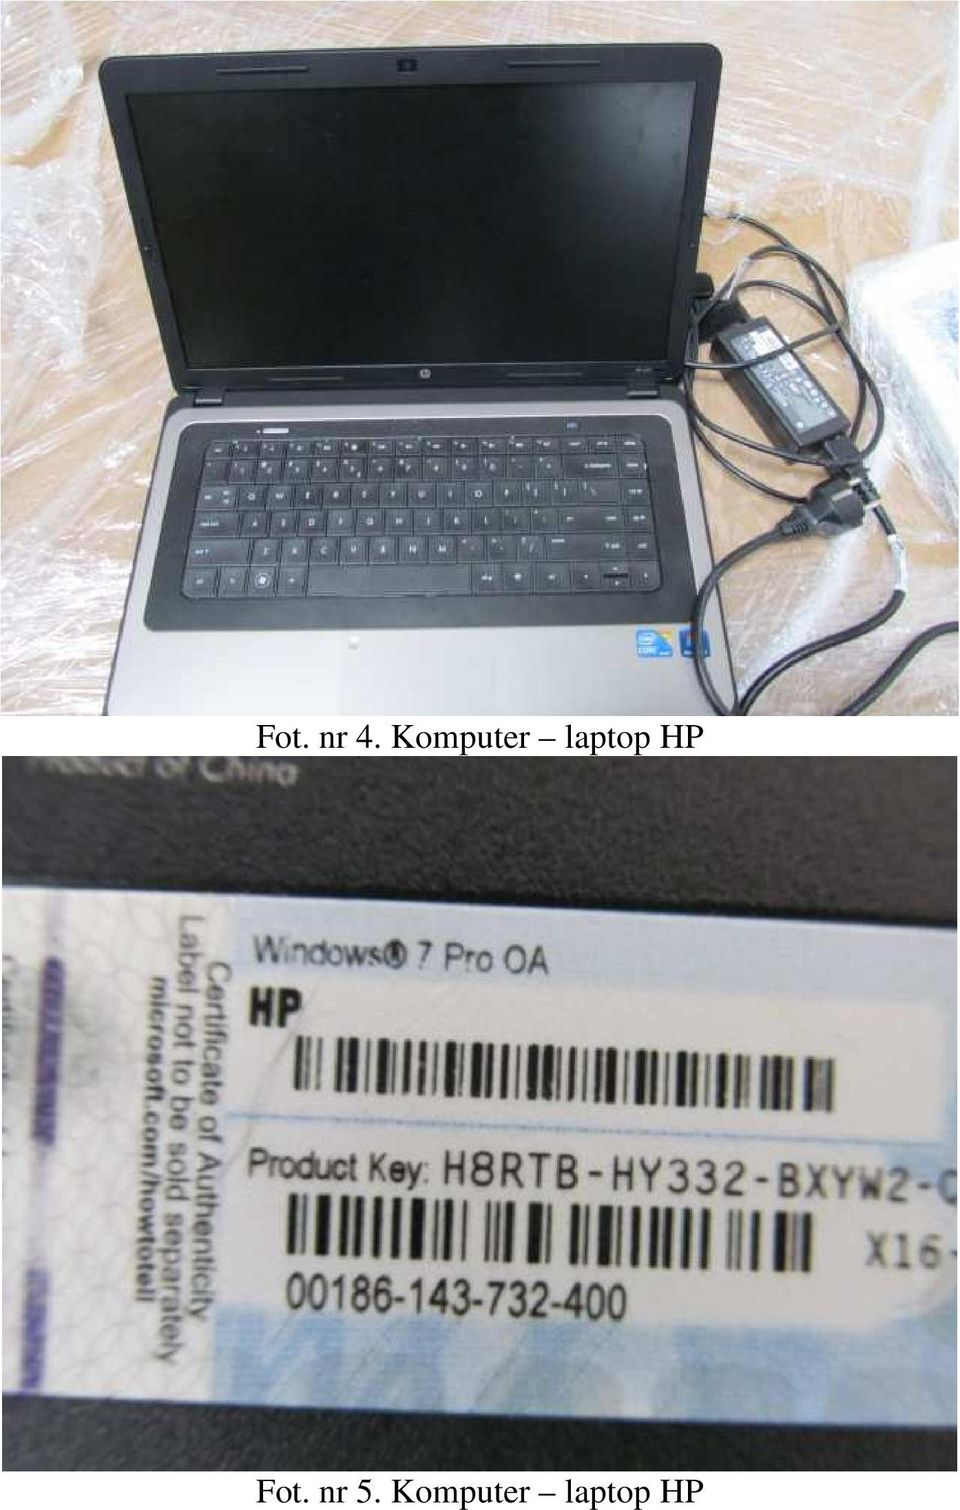 laptop HP Fot.